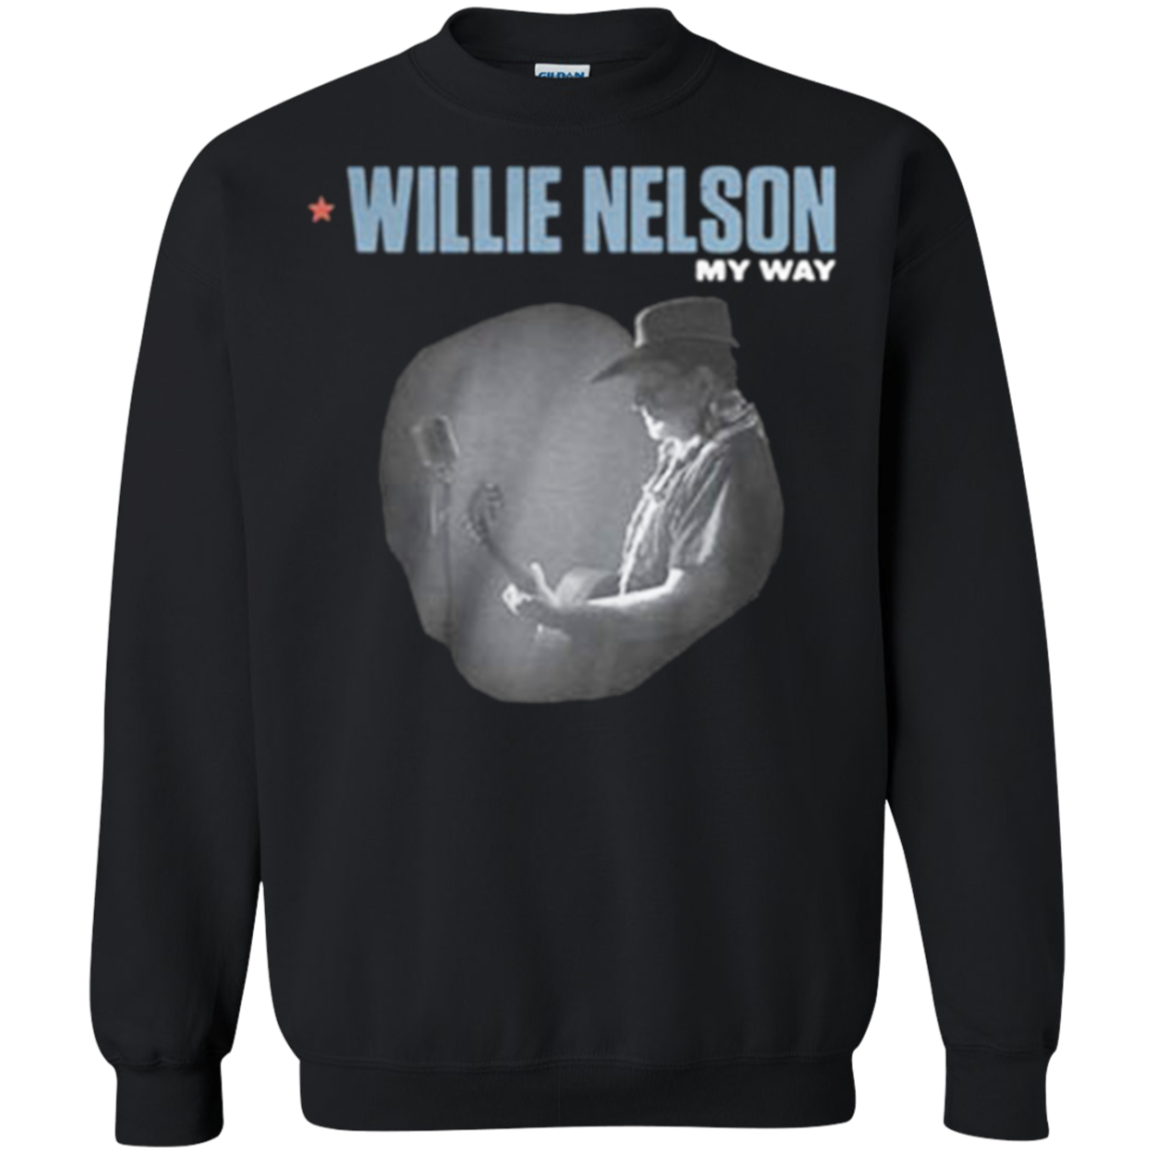 My Way Willie Nelson: Discover Cool Willie Nelson My Way G180 Gildan Crewneck